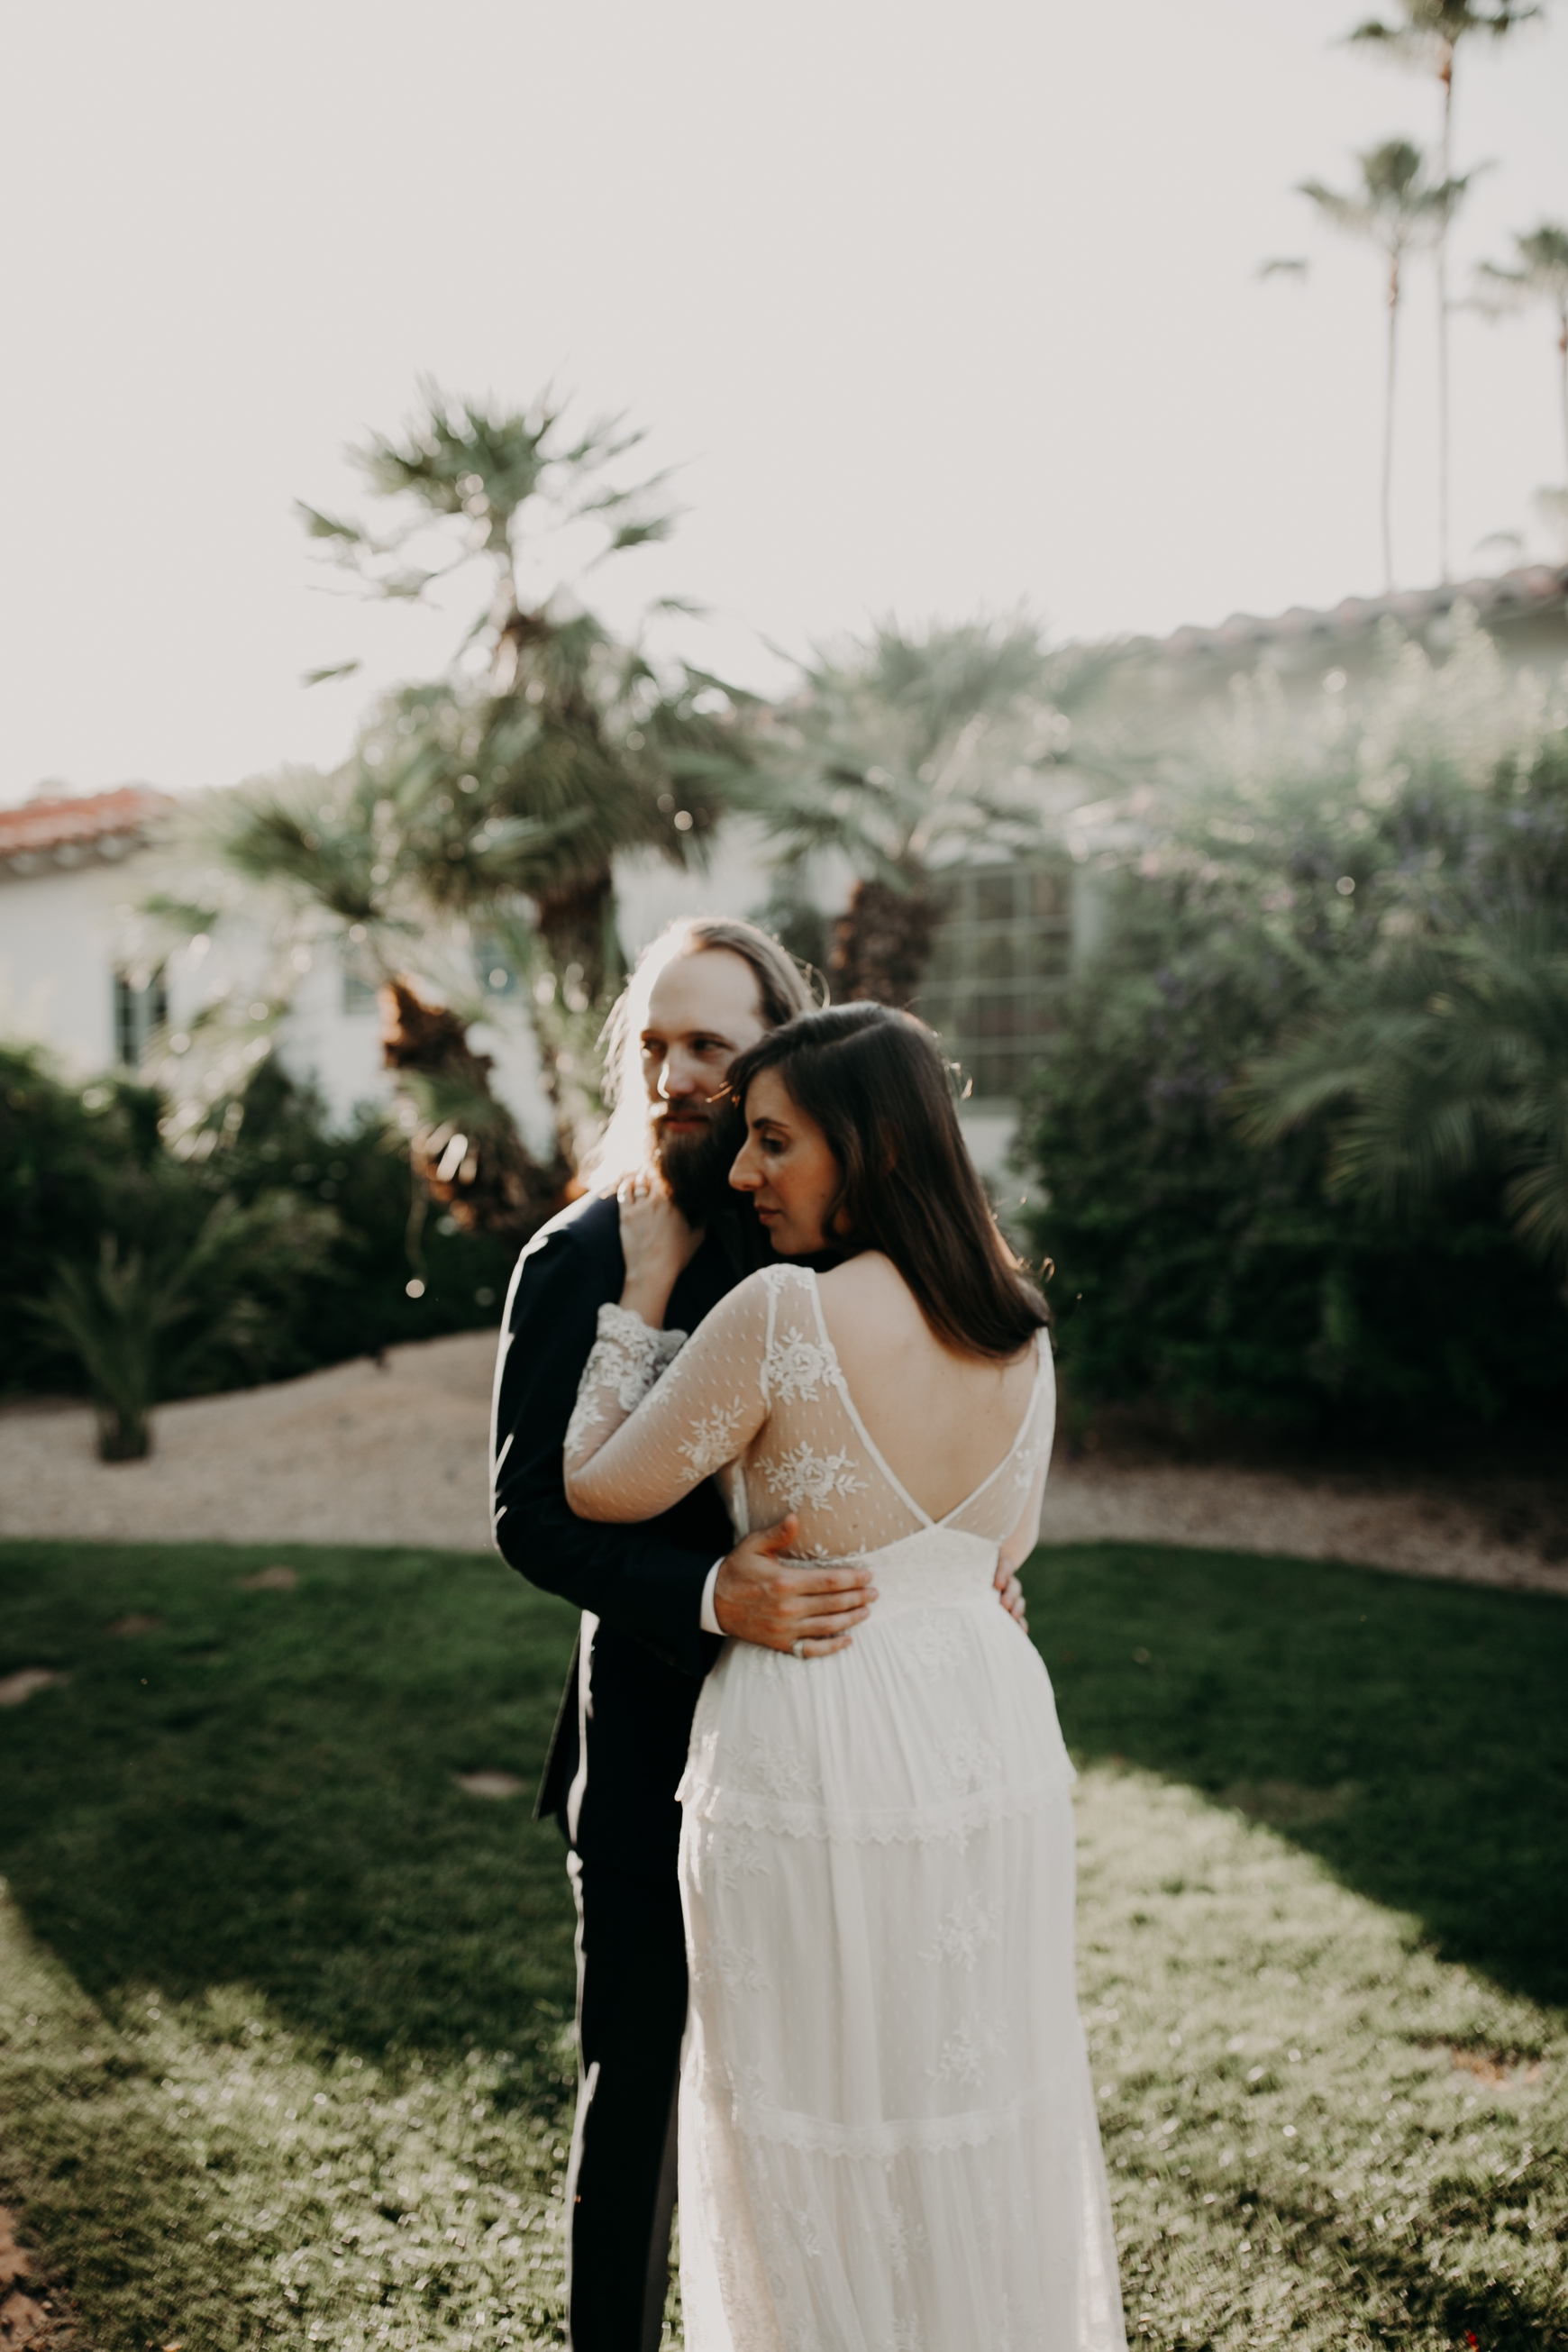 The Colony Palms Hotel Palm Springs Wedding Jaclyn & Tyson Emily Magers Photography-363.jpg